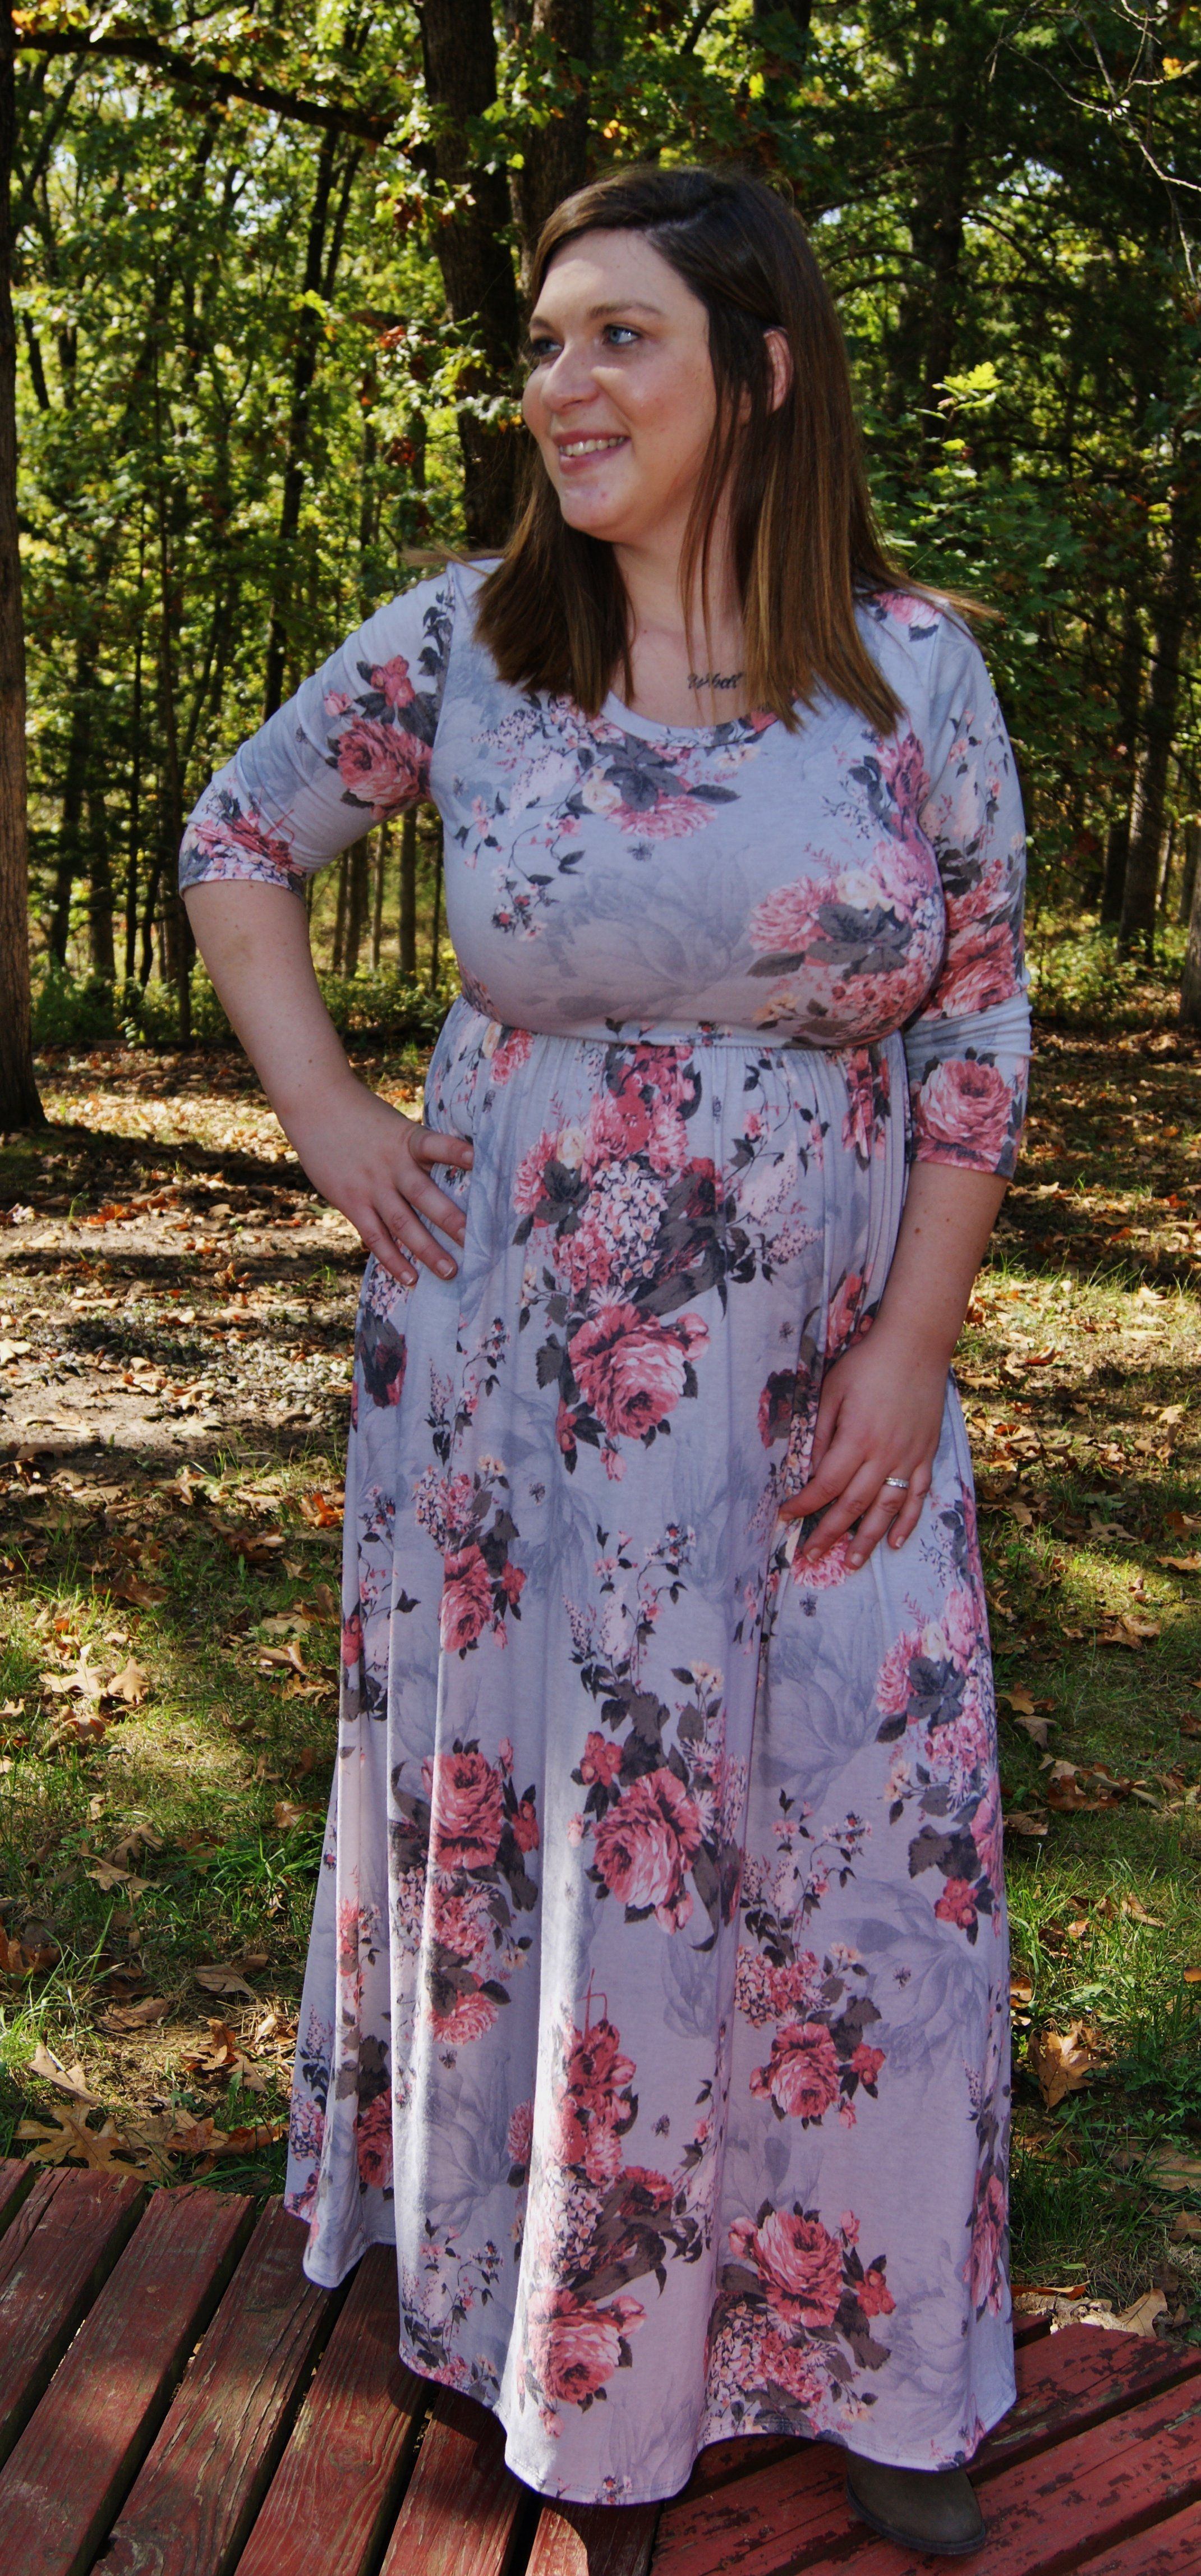 Flower Me With Love Maxi Dress | My Style | Pinterest